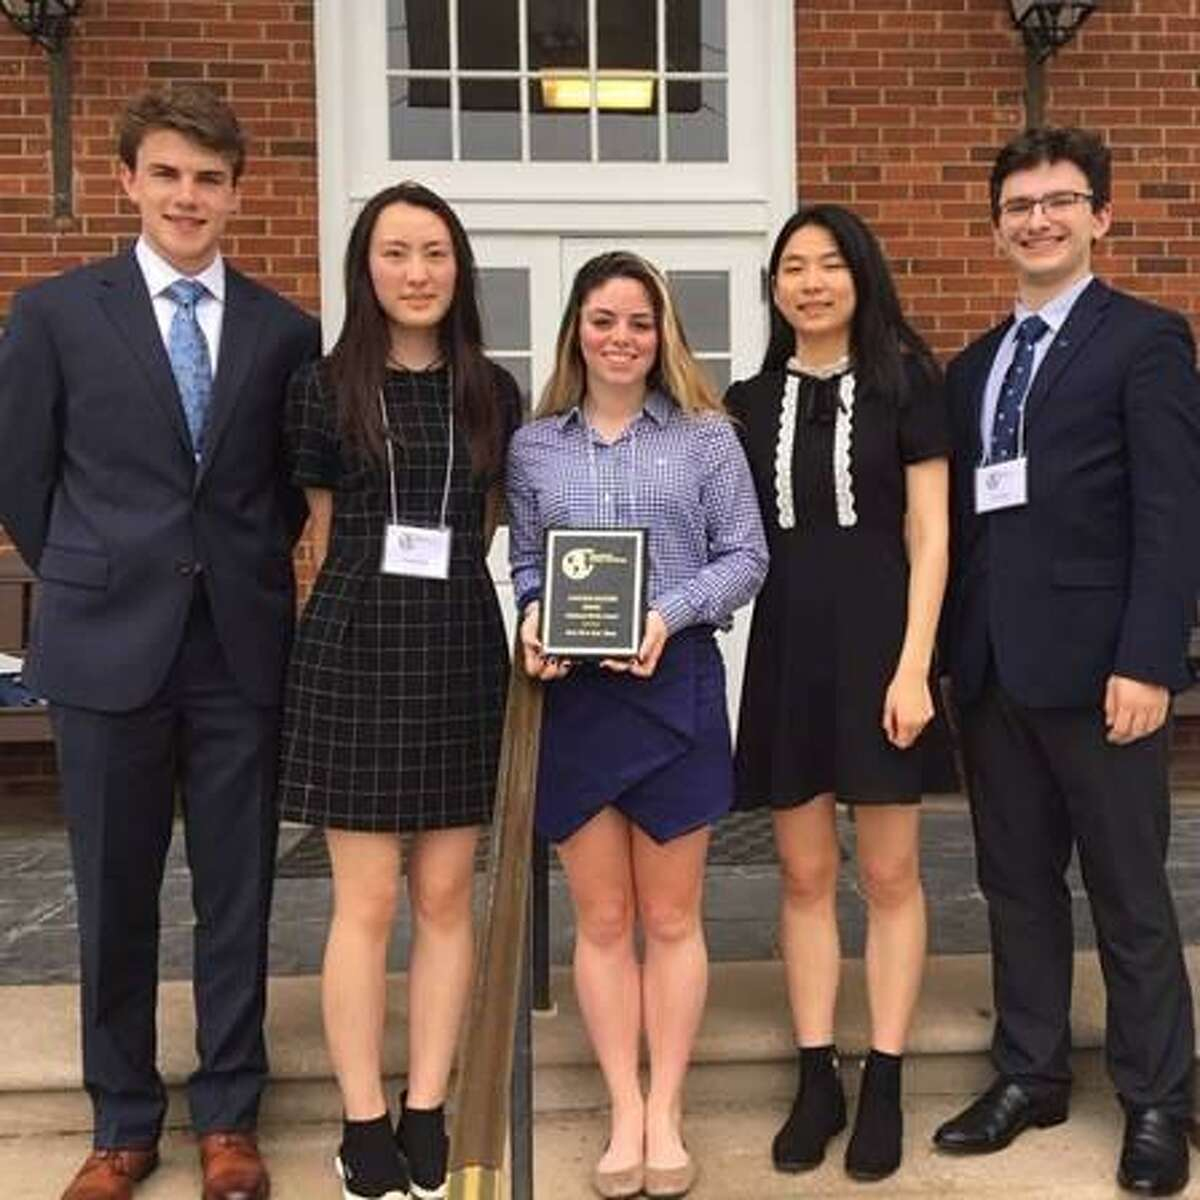 Immaculate High School engineering students won awards at the 2019 National Real World Design Challenge. From left to right: Keelan Doherty, Ruining Nancy Yang, Mackenzy Garden, Yuxuan Brittany Hu and James Vigar.